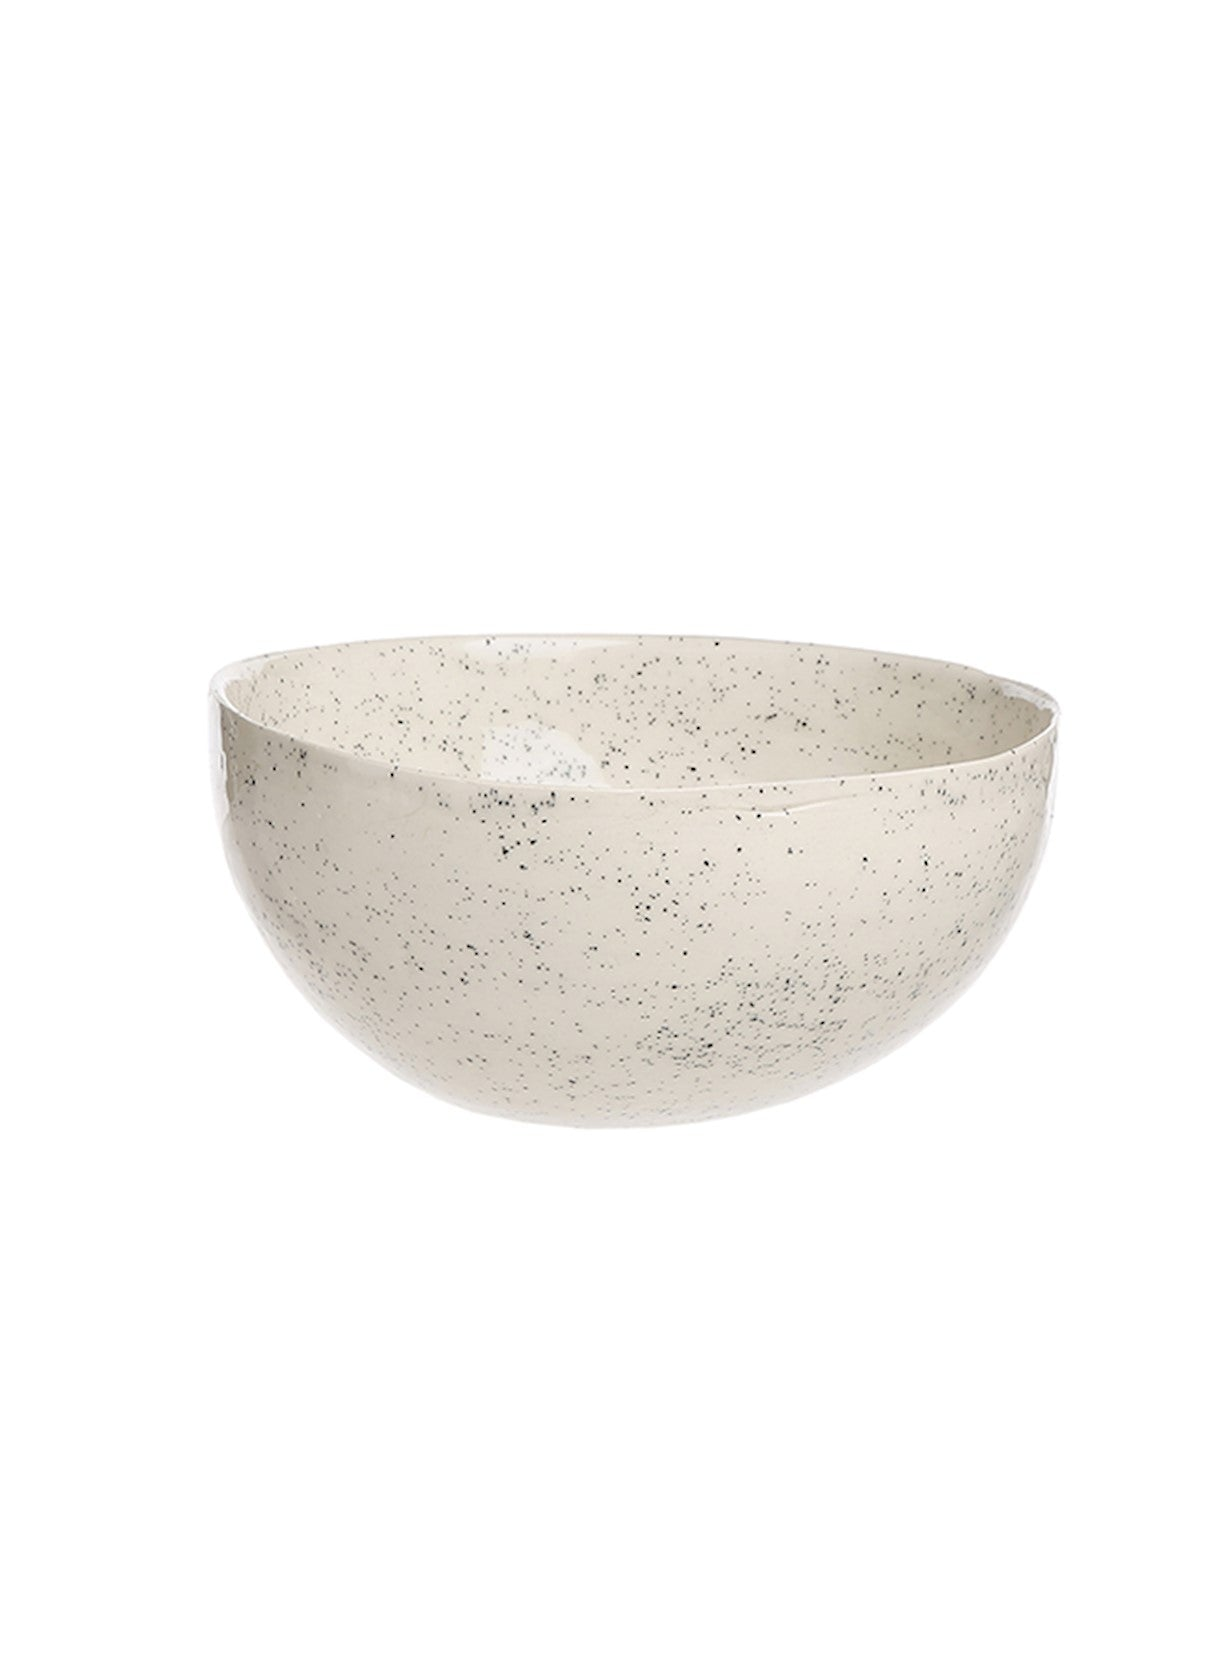 SALAD BOWL 'PENEDA' ( 4 x ) - Dinnerware - SCAPA HOME - SCAPA HOME OFFICIAL